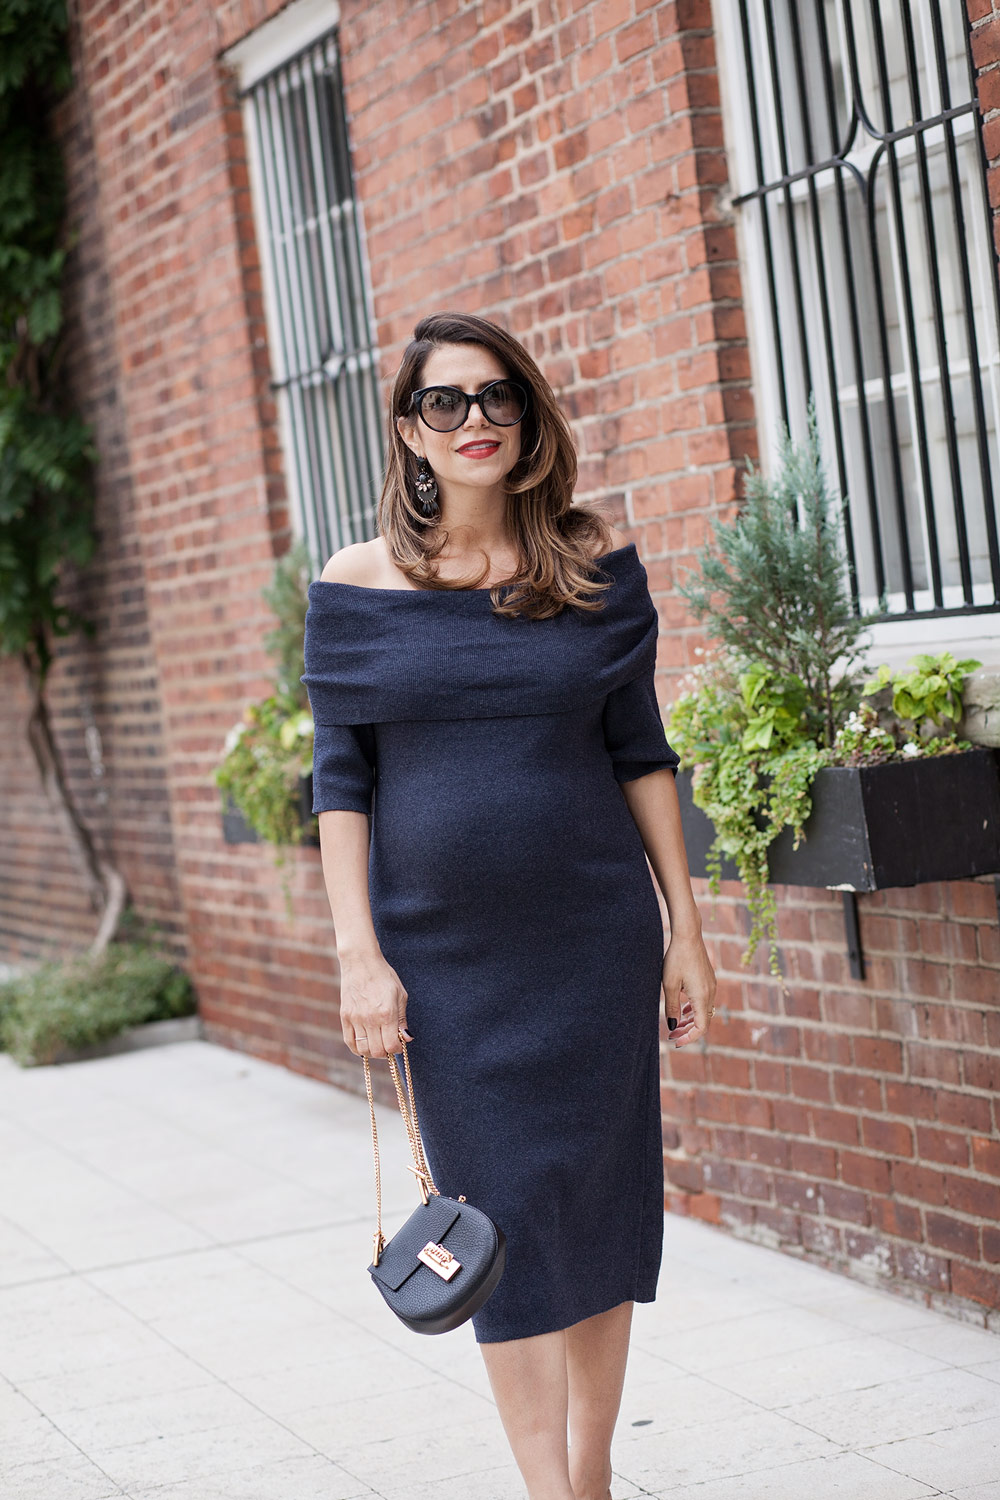 nordstrom-grey-off-the-shoulder-sweater-dress-workwear-chloe-dress-prada-cateye-sunglasses-fall-style-bump-style-maternity-looks-for-fall-corporate-catwalk-3